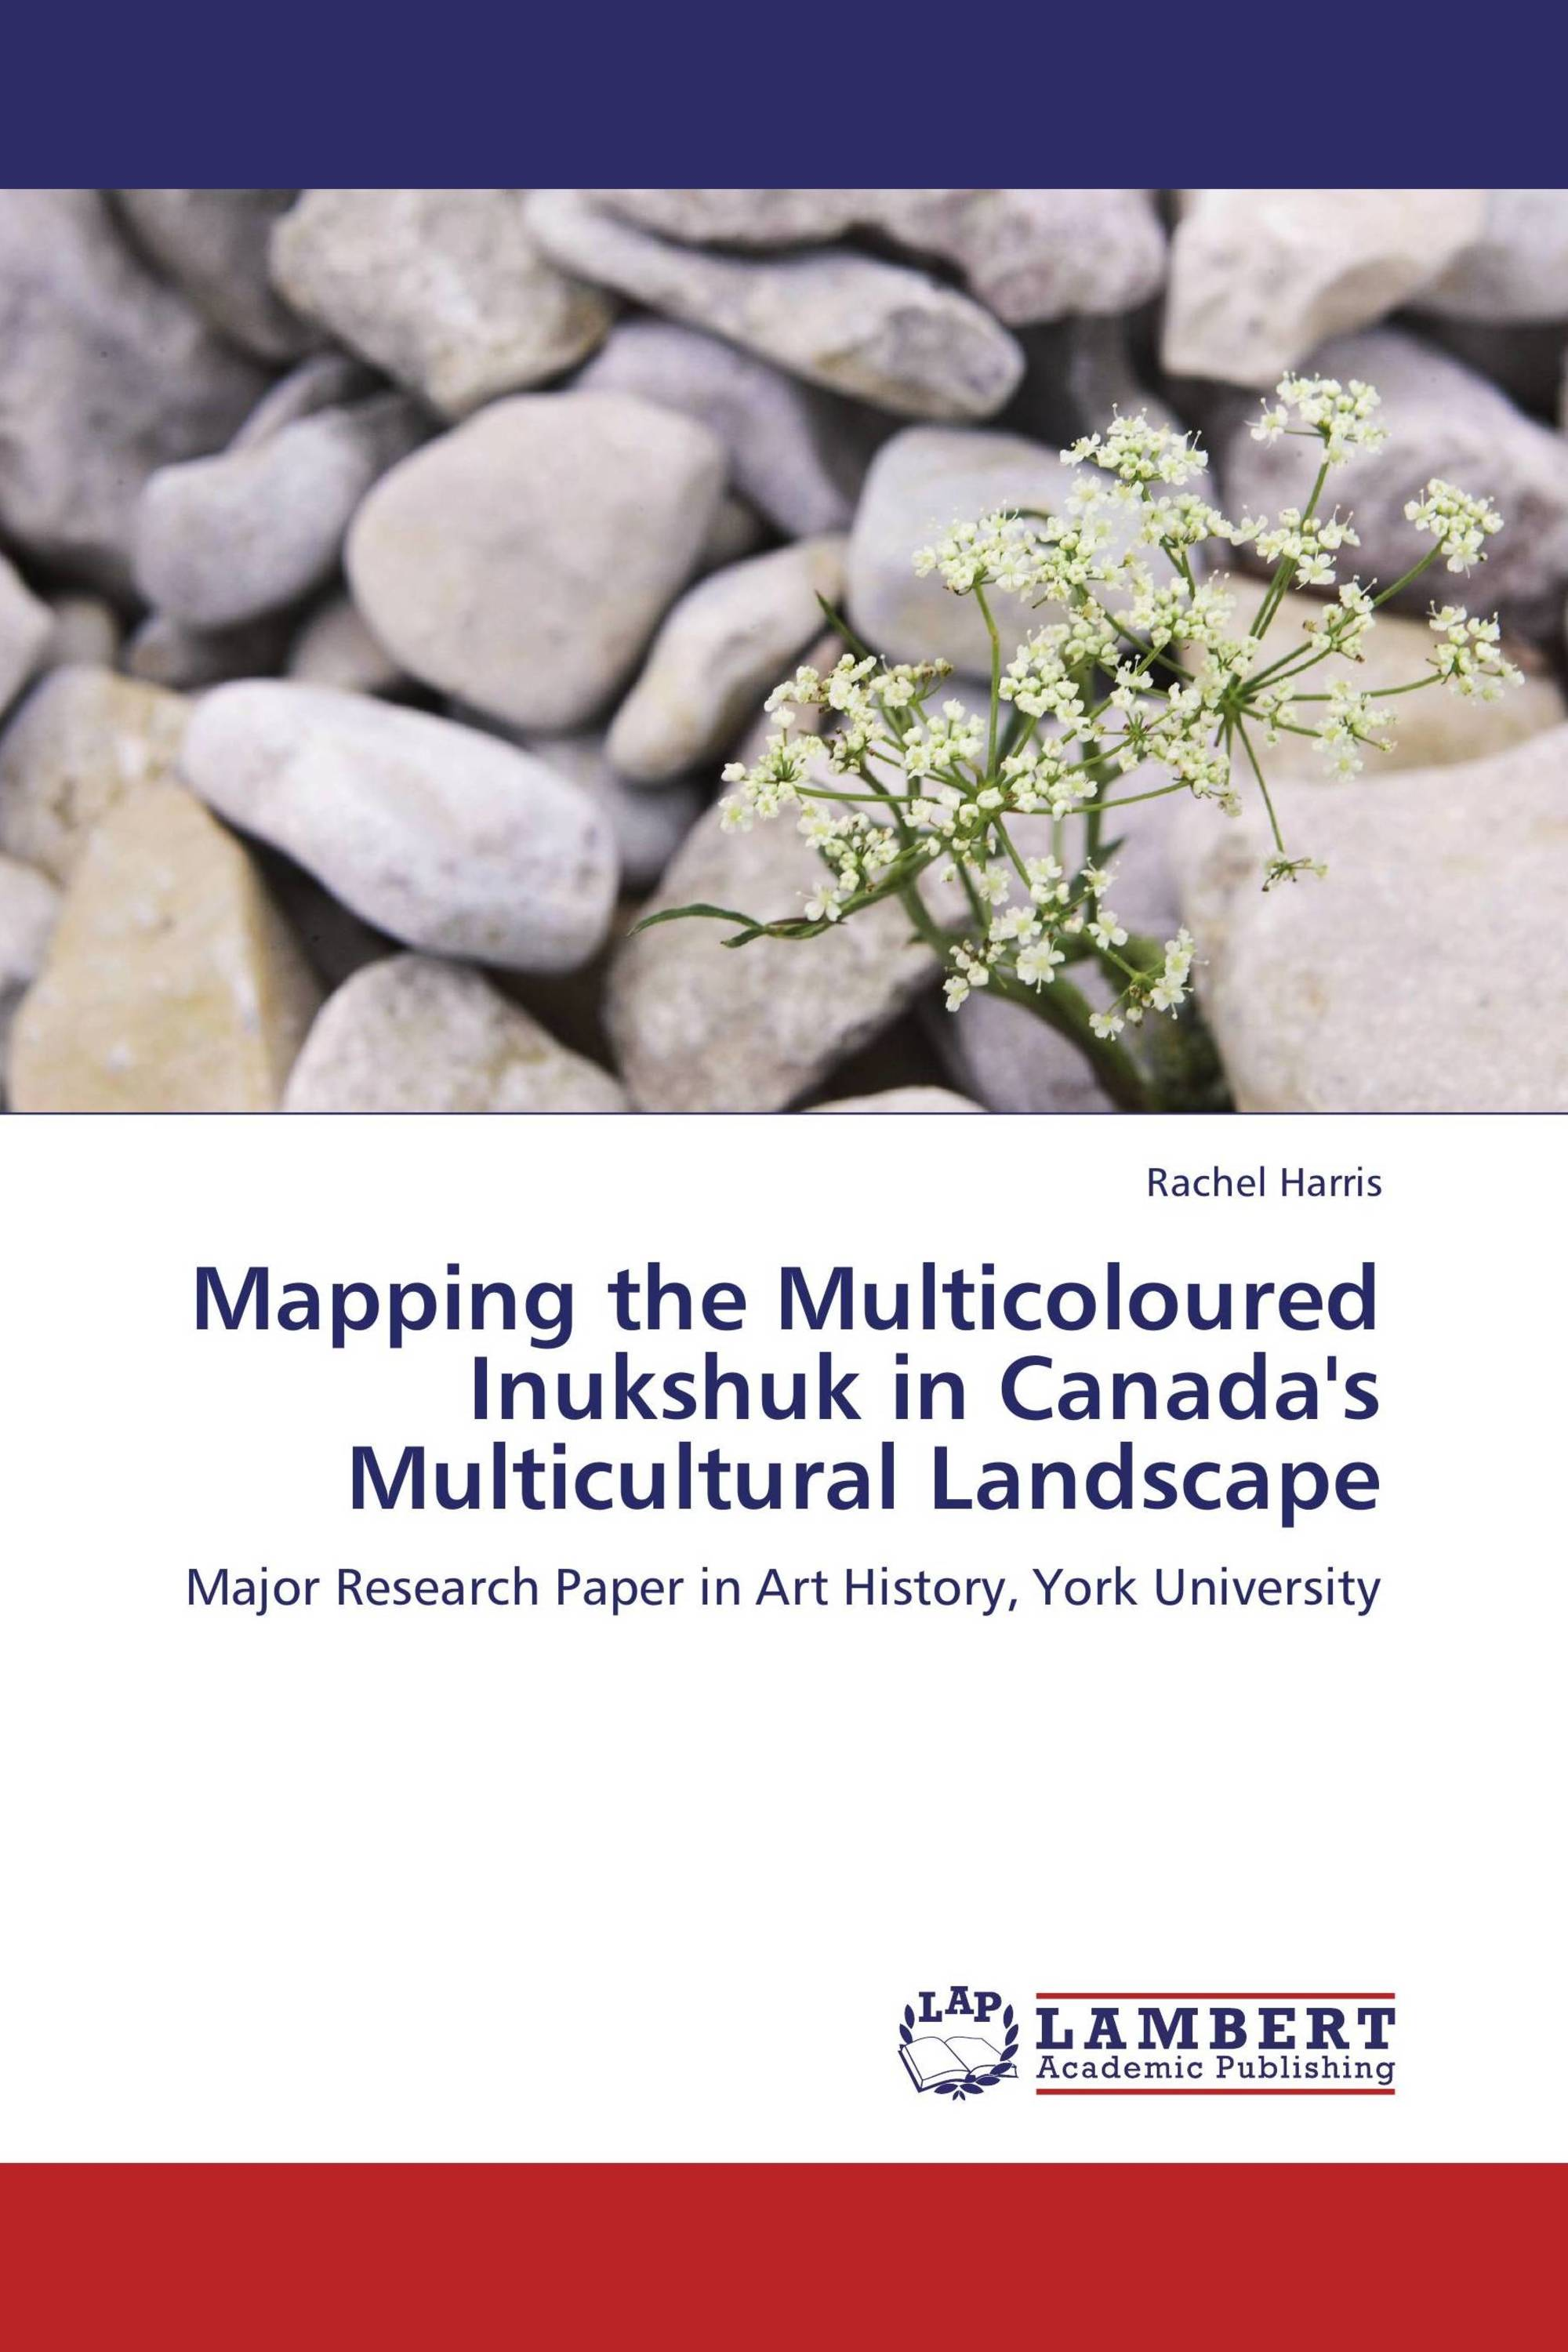 Mapping the Multicoloured Inukshuk in Canada's Multicultural Landscape